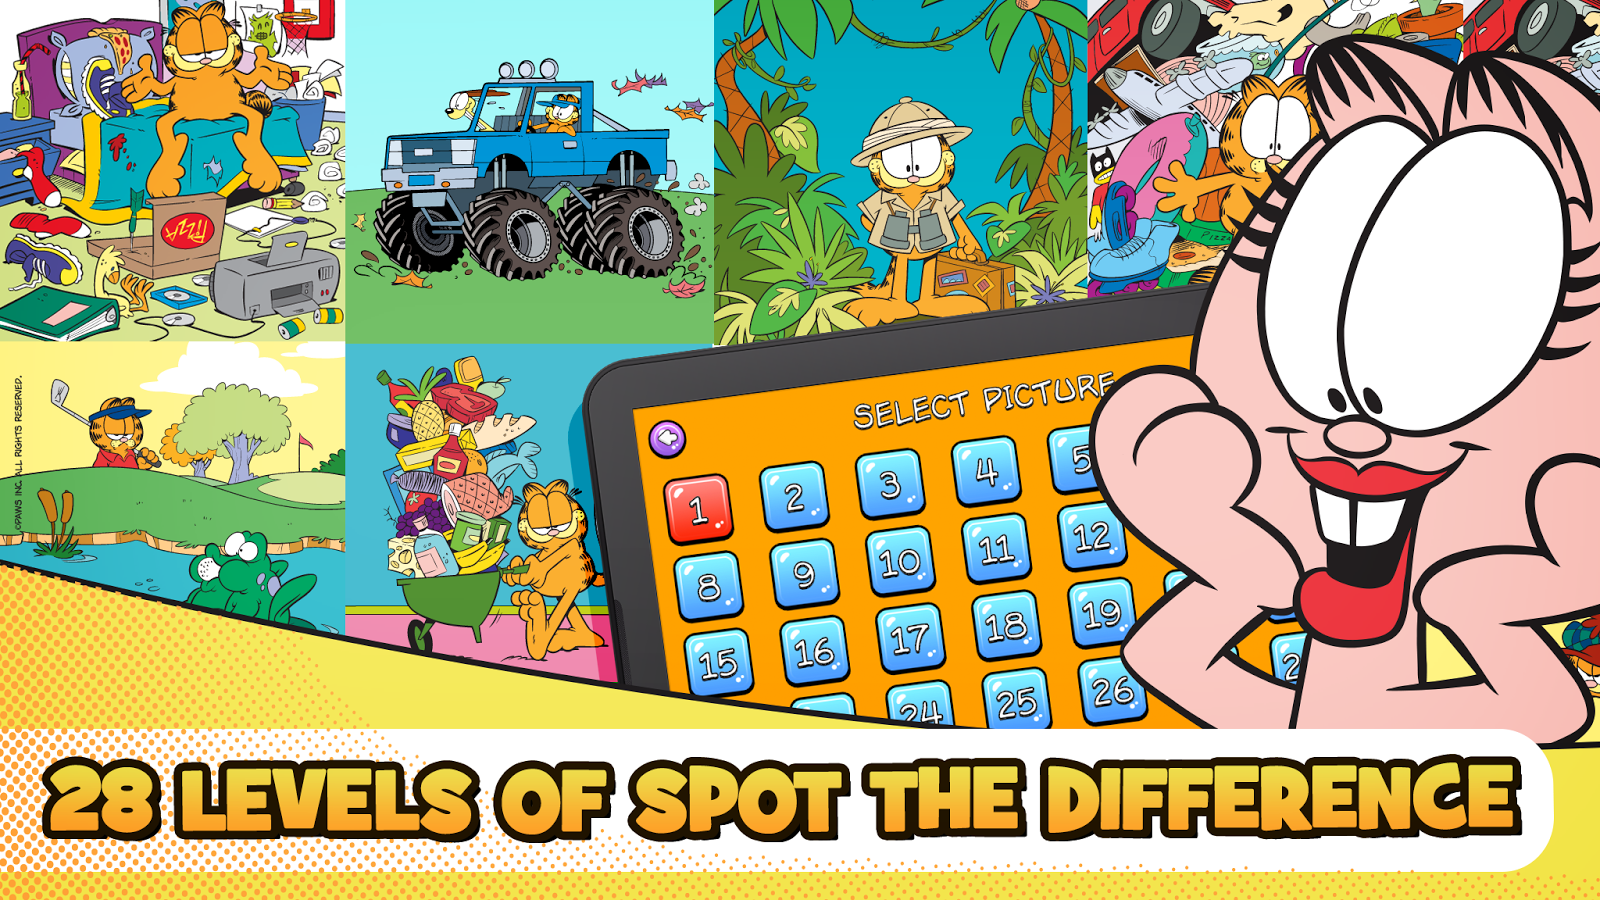 Garfield Spot the Difference 1 0 3 APK Download Android